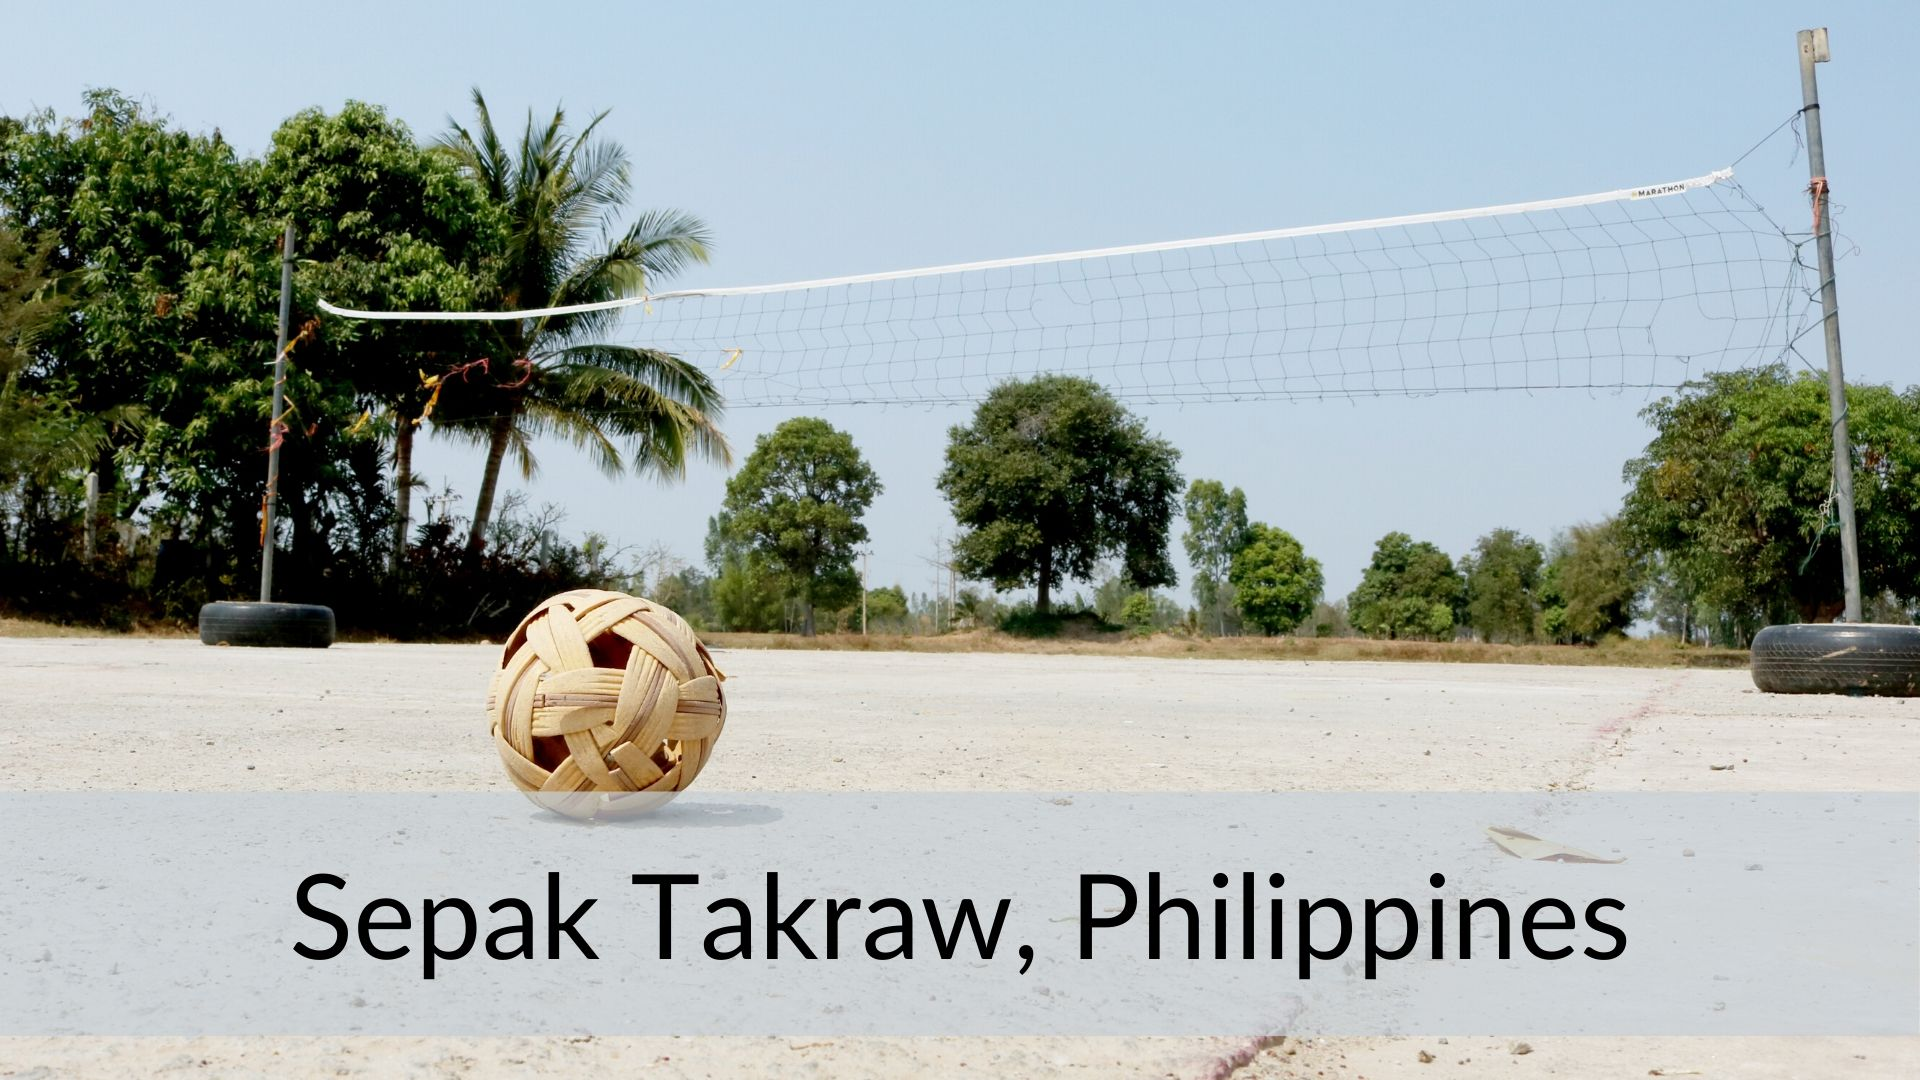 Phillipines national sport